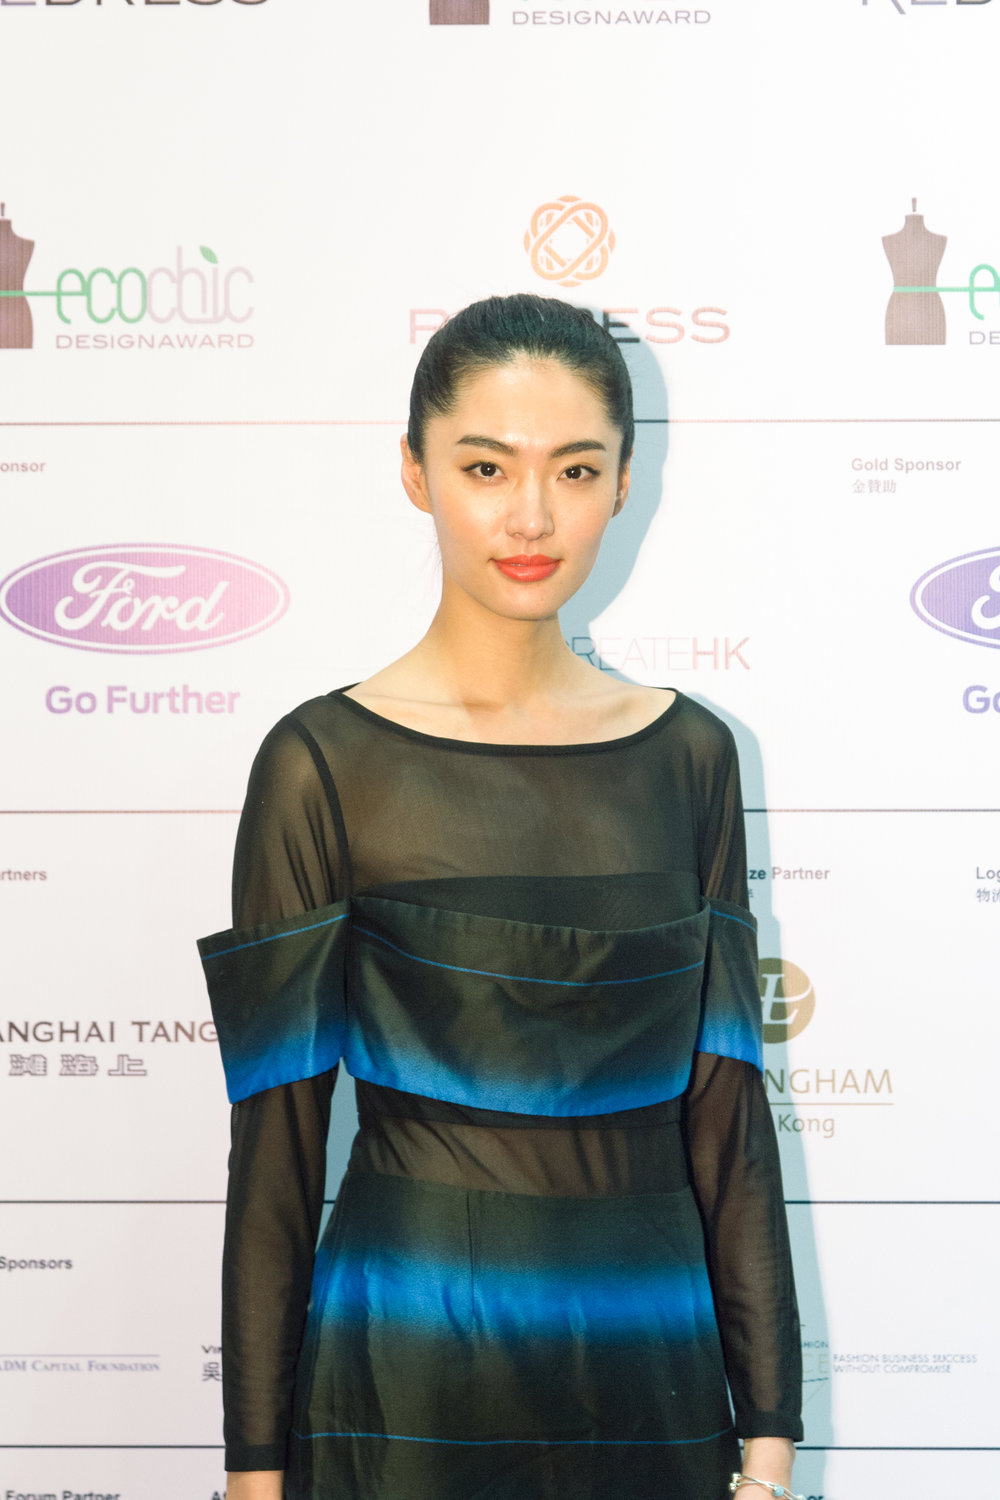 Redress Design Award ambassador and Chinese supermodel Bonnie Chen wears Aman Cheung to attend the Redress Design Award 2015/16 Grand Final Show